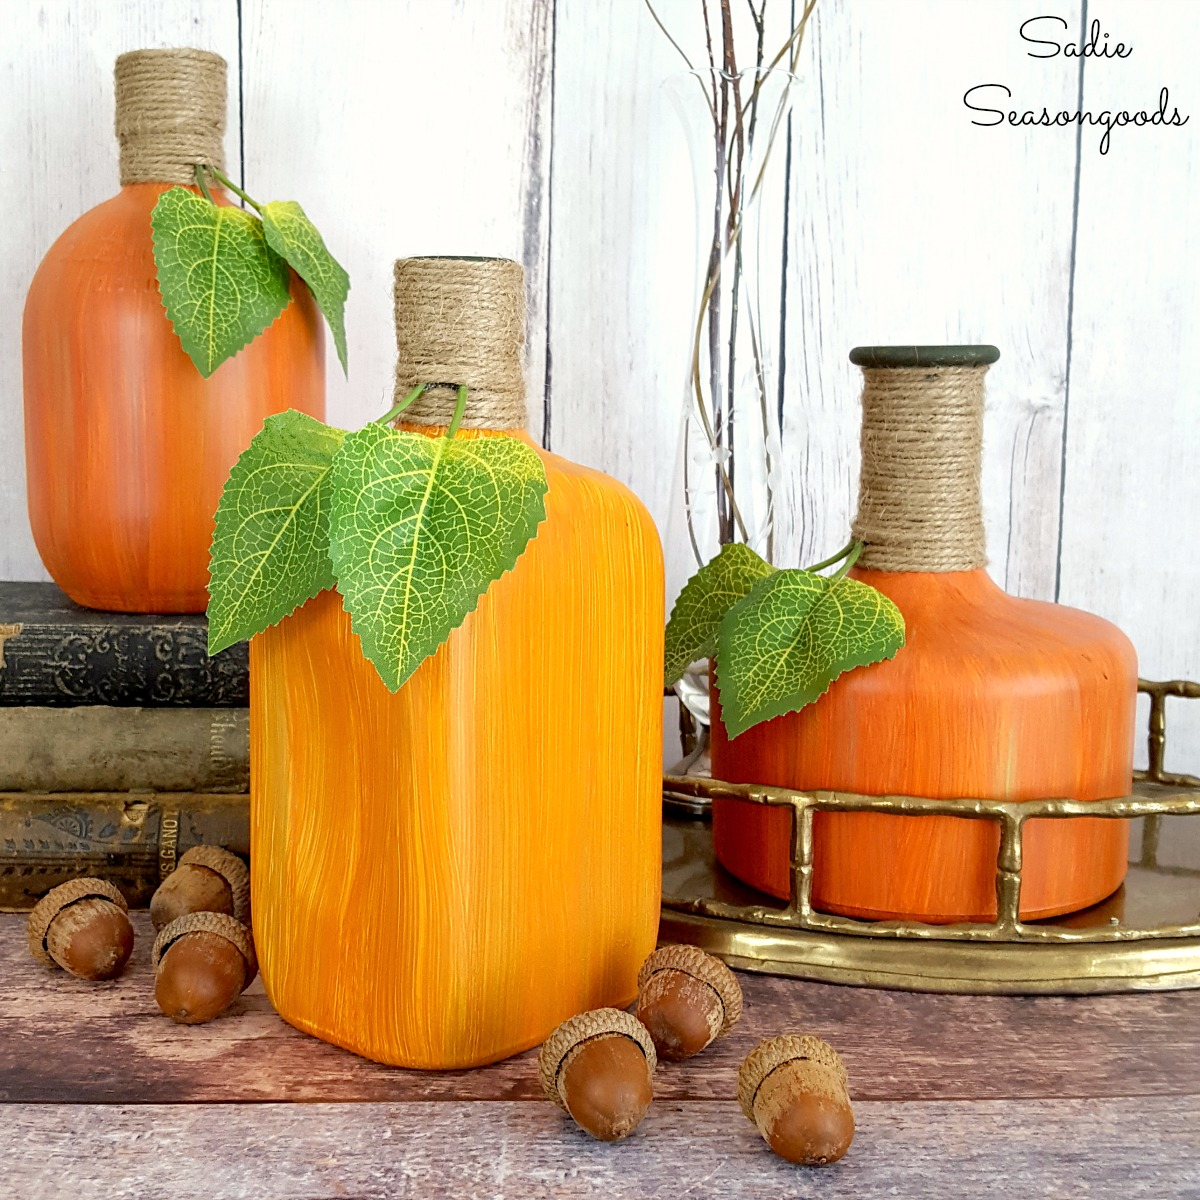 Decorative gourds for harvest decor or autumn decor by painting glass jars and bottles for pumpkin decor